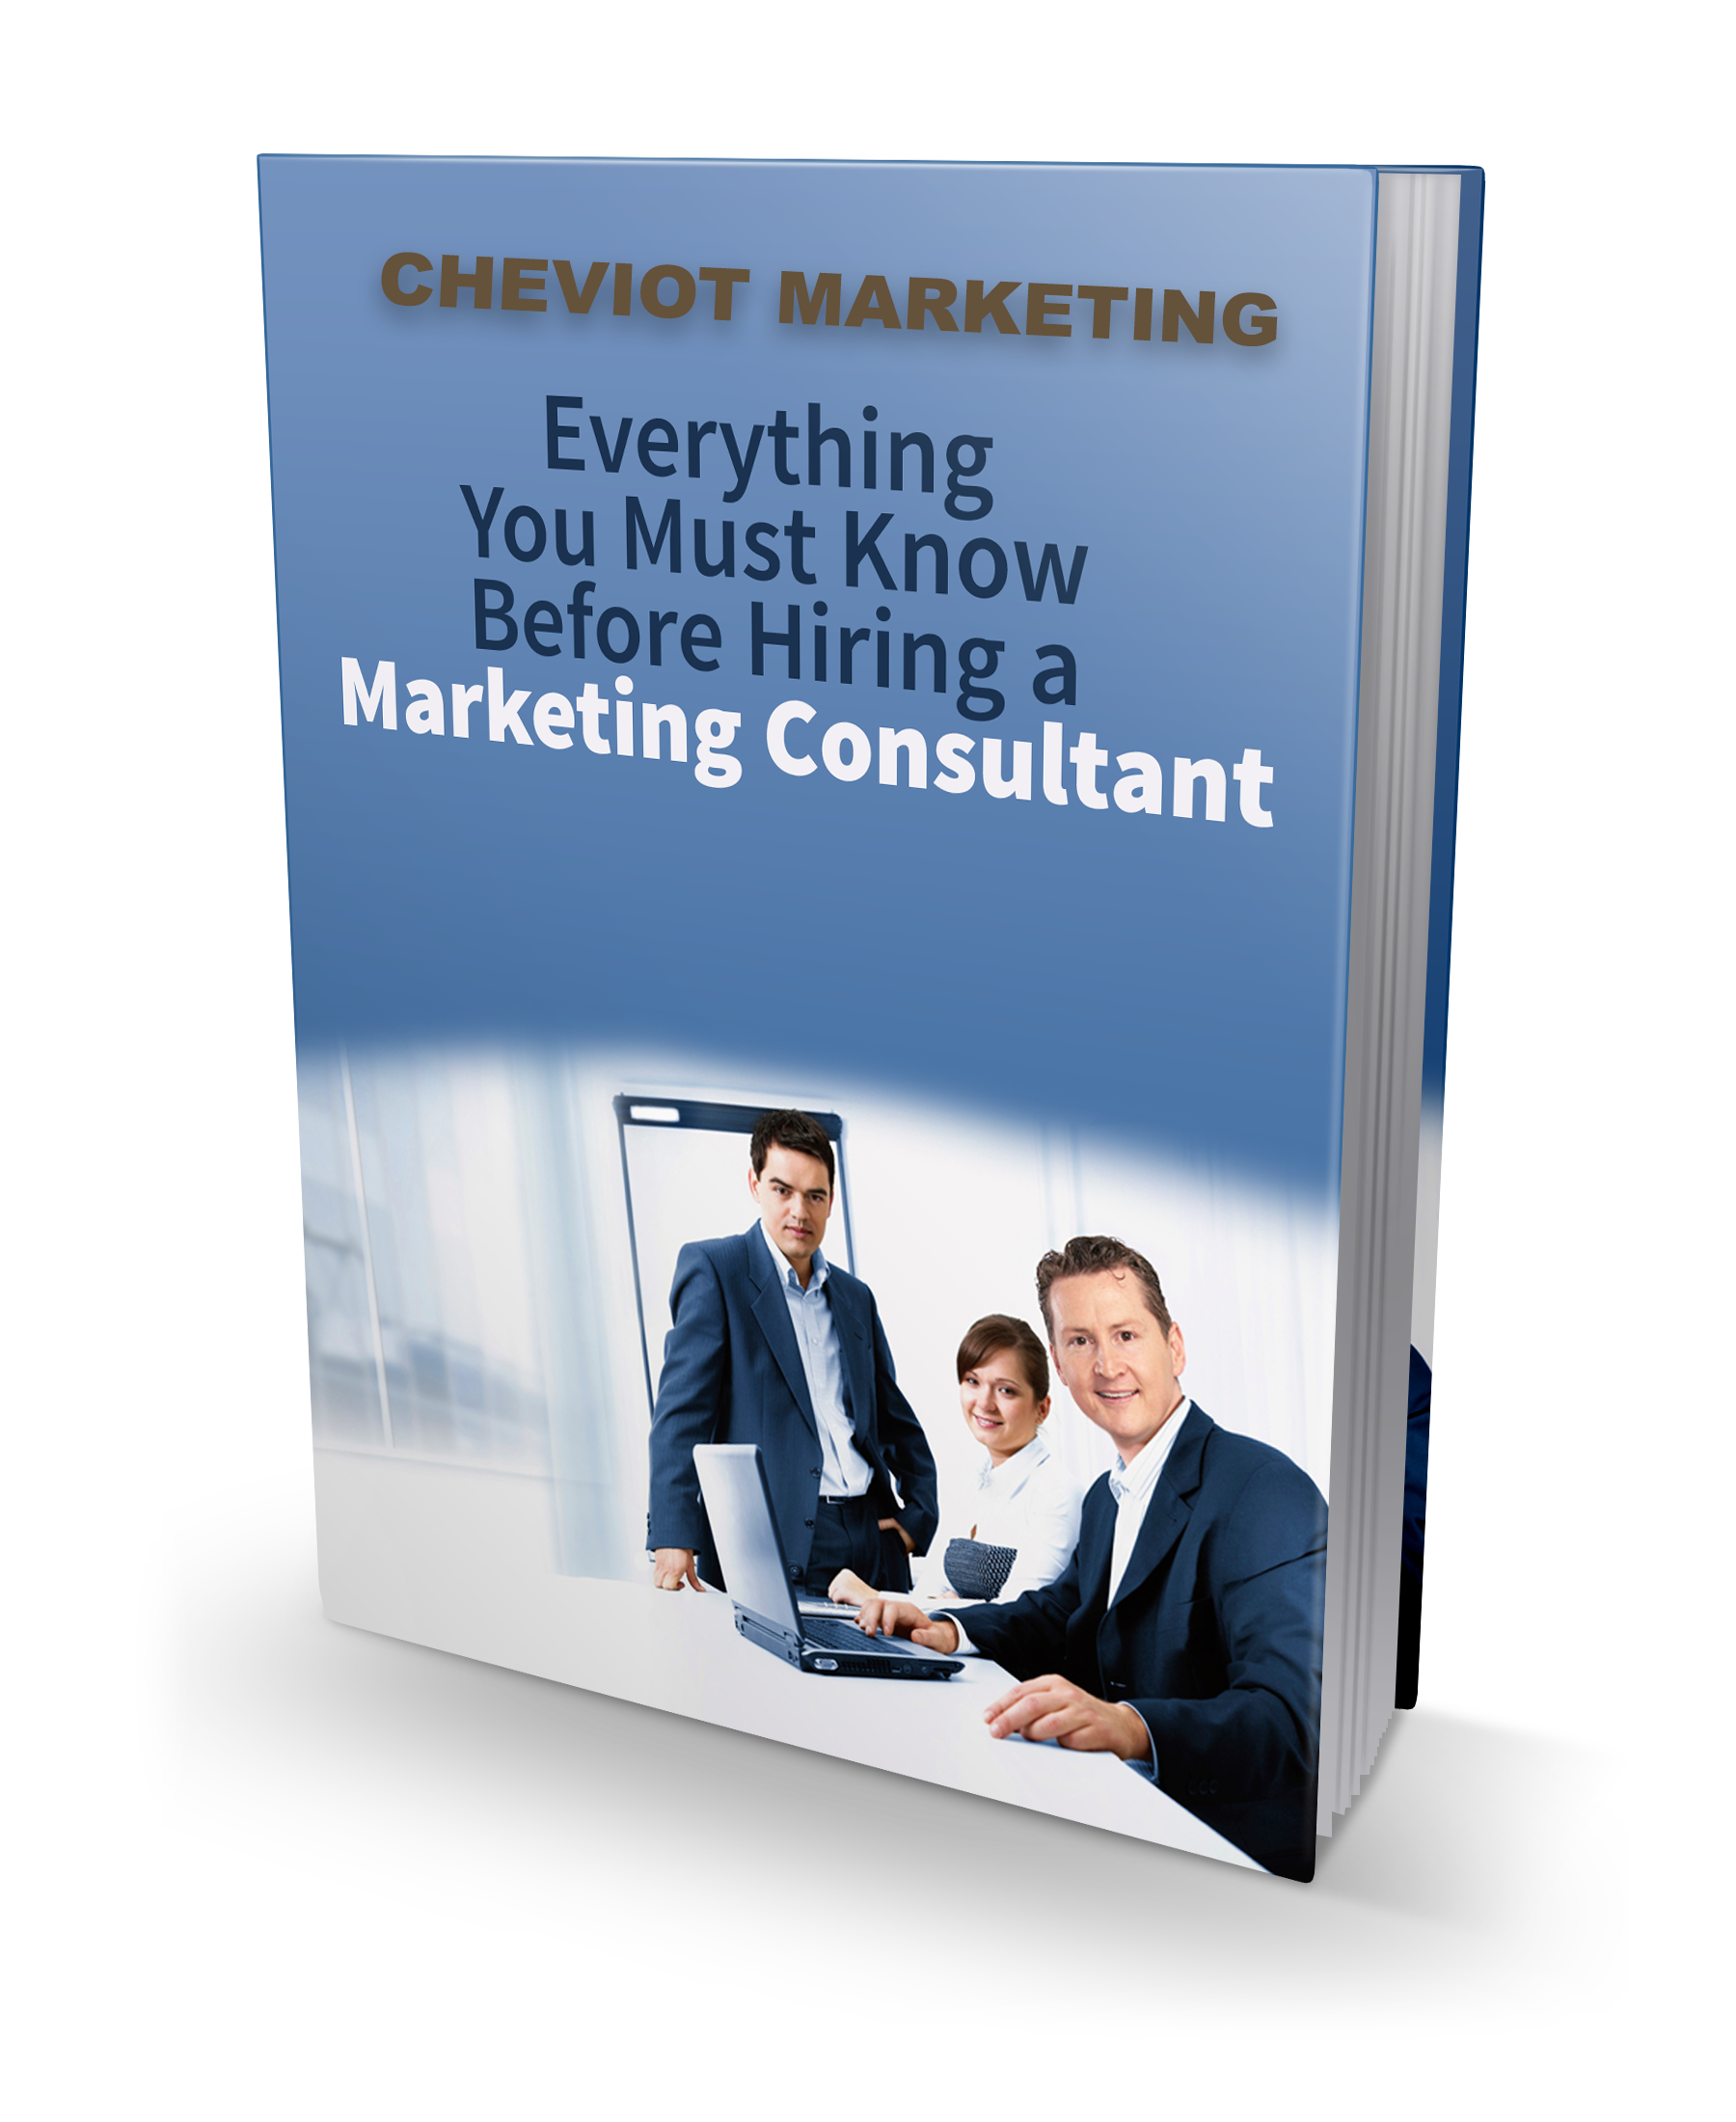 Cheviot Marketing - Why You Need A Marketing Consultant